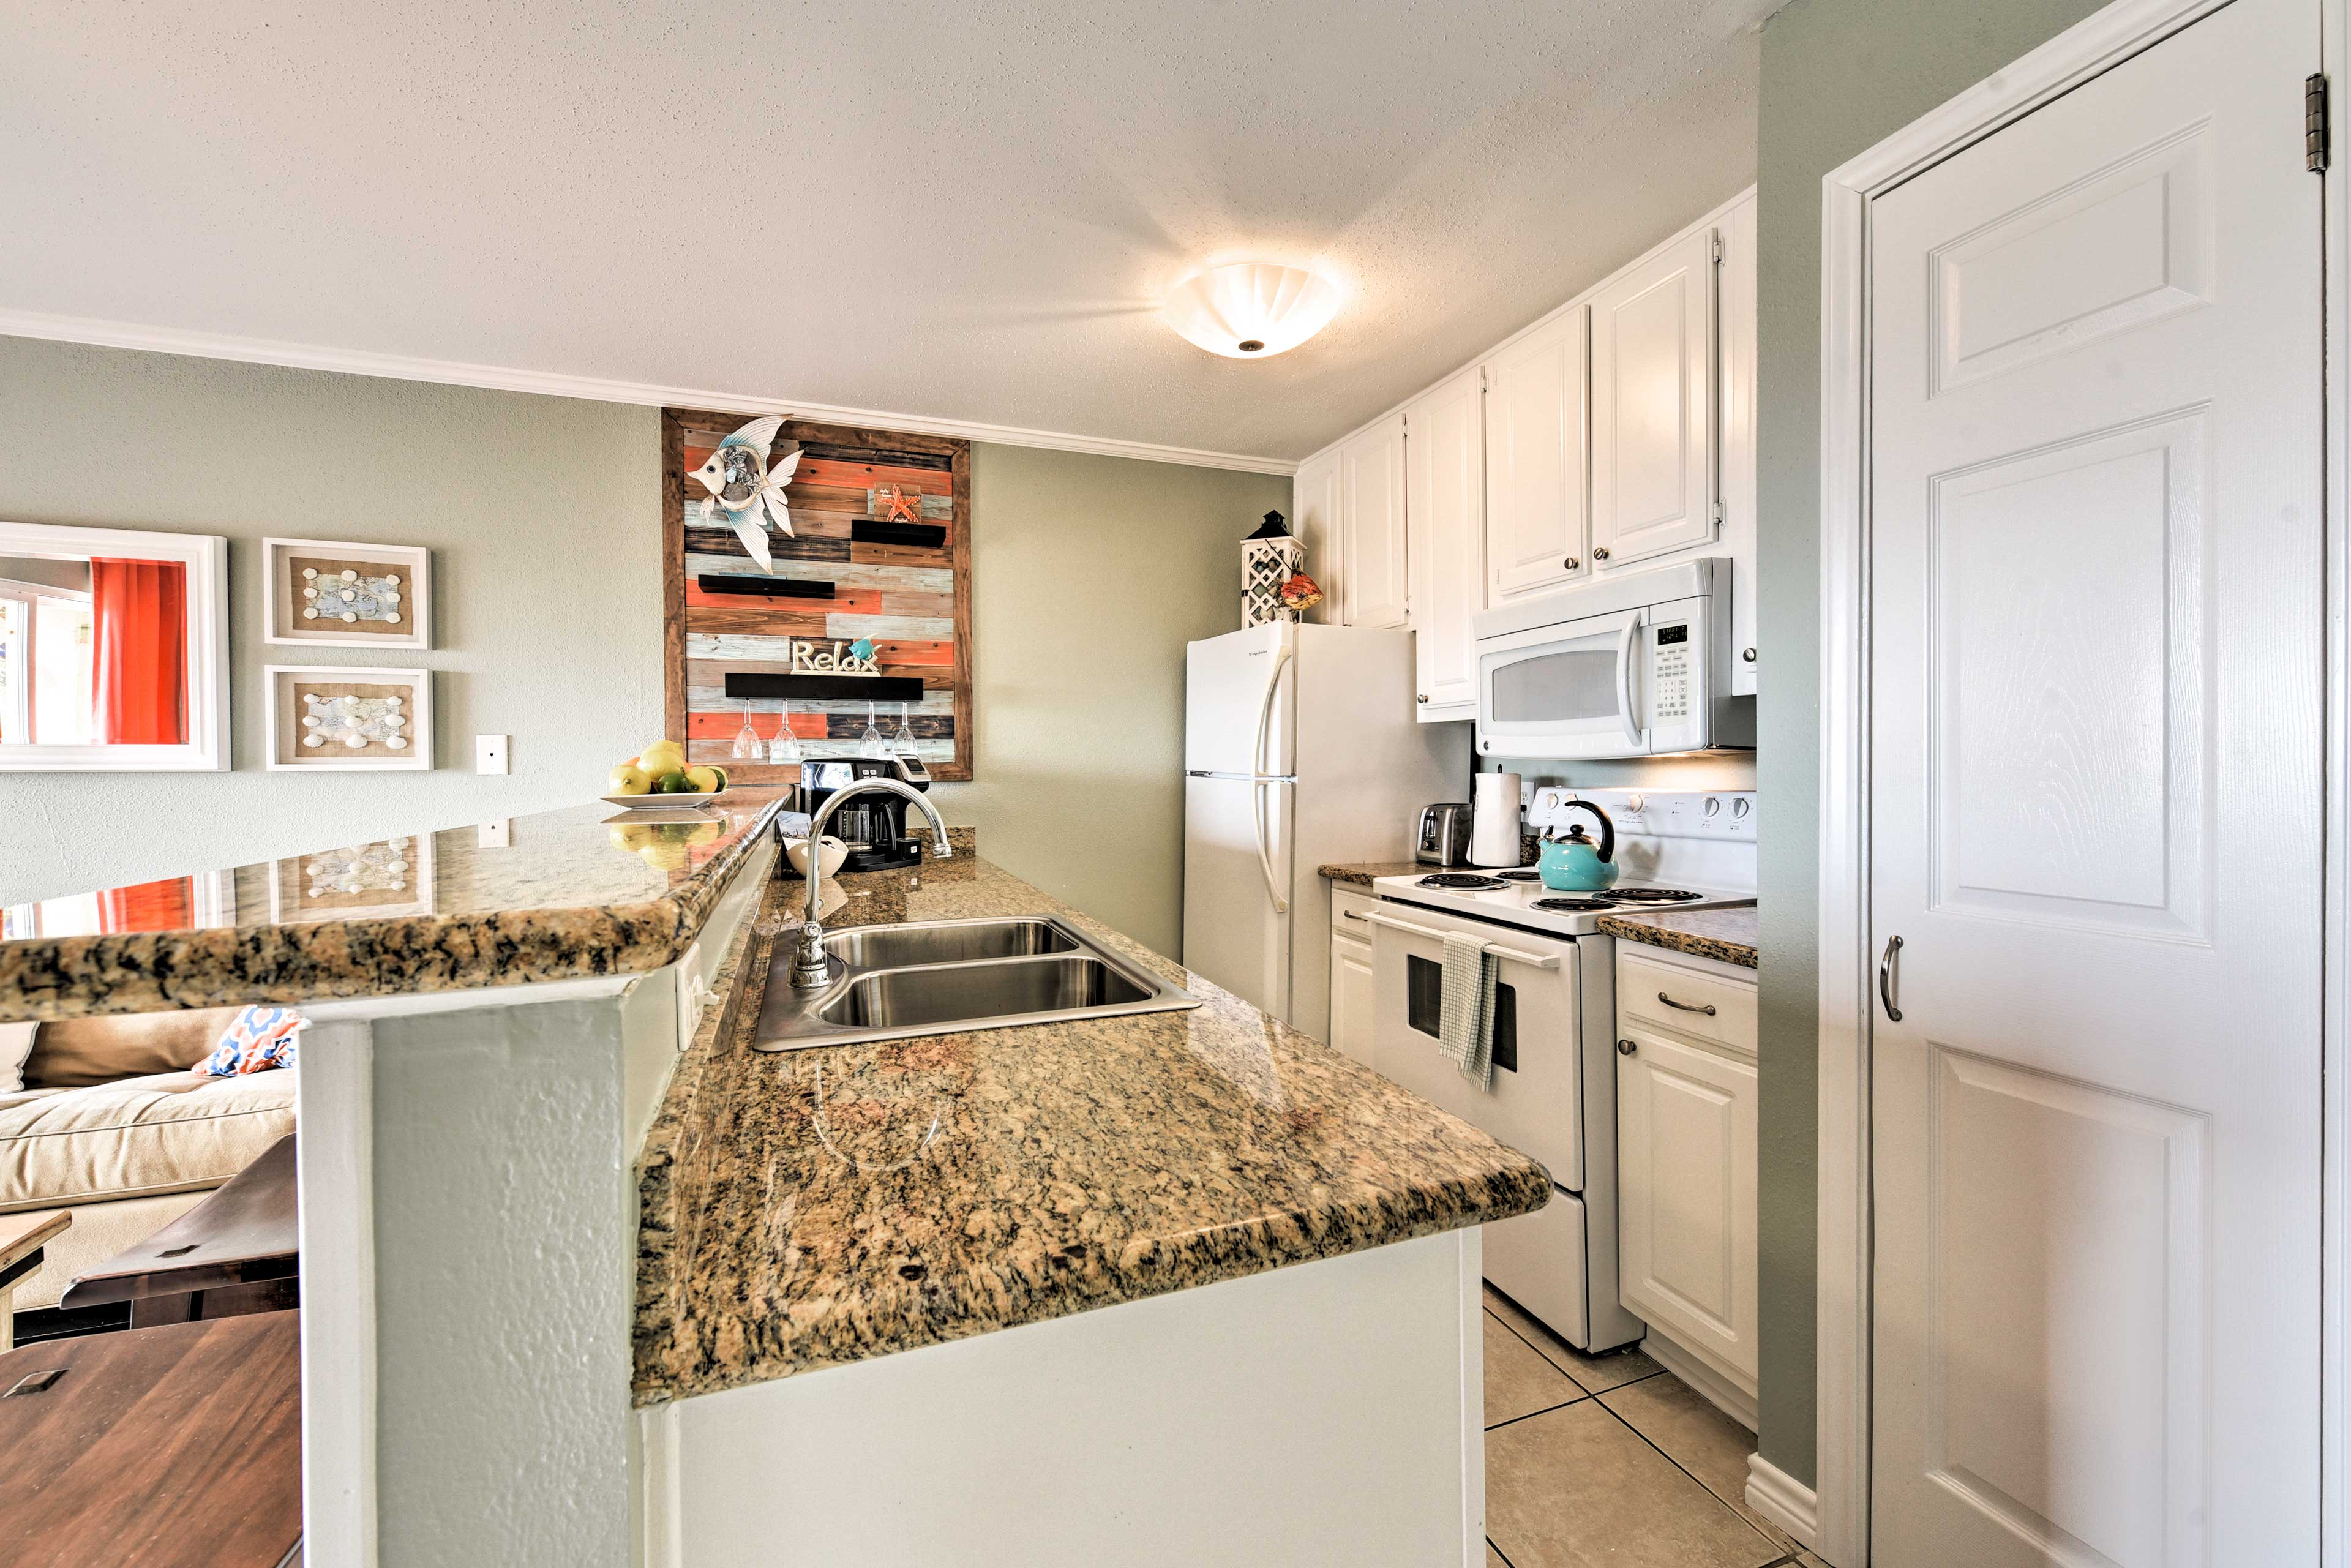 Slice and dice on the expansive countertops.